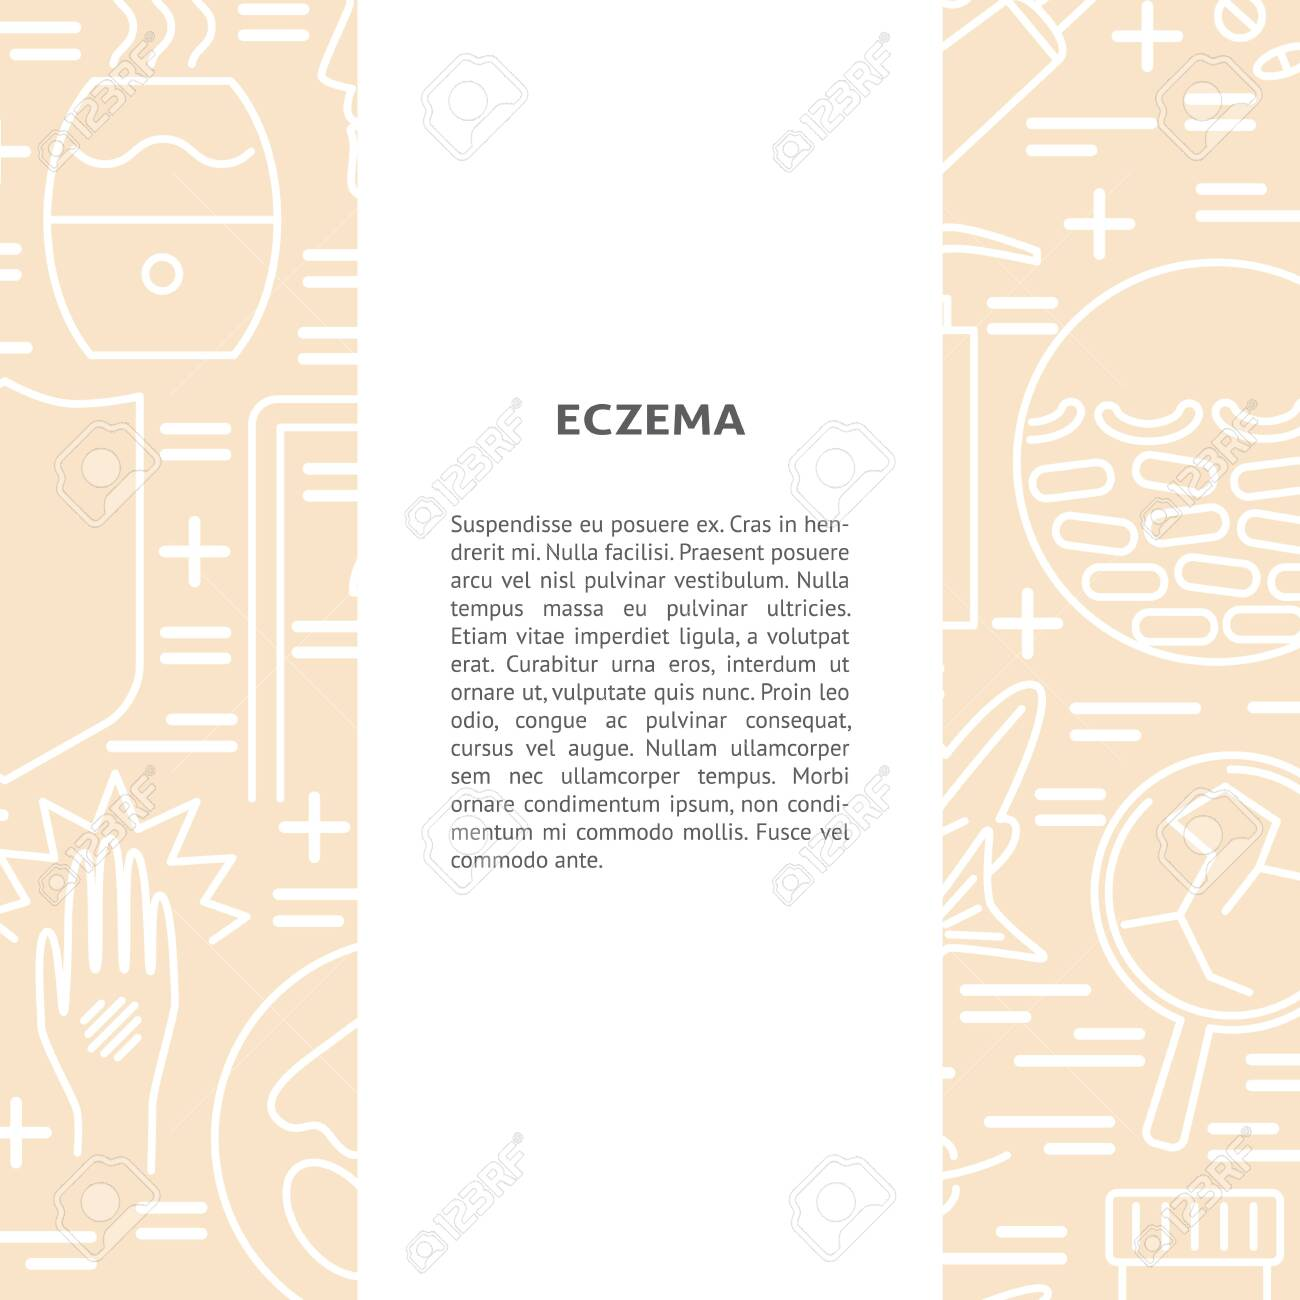 Eczema Symptoms And Treatment Concept Background In Line Style 1300x1300